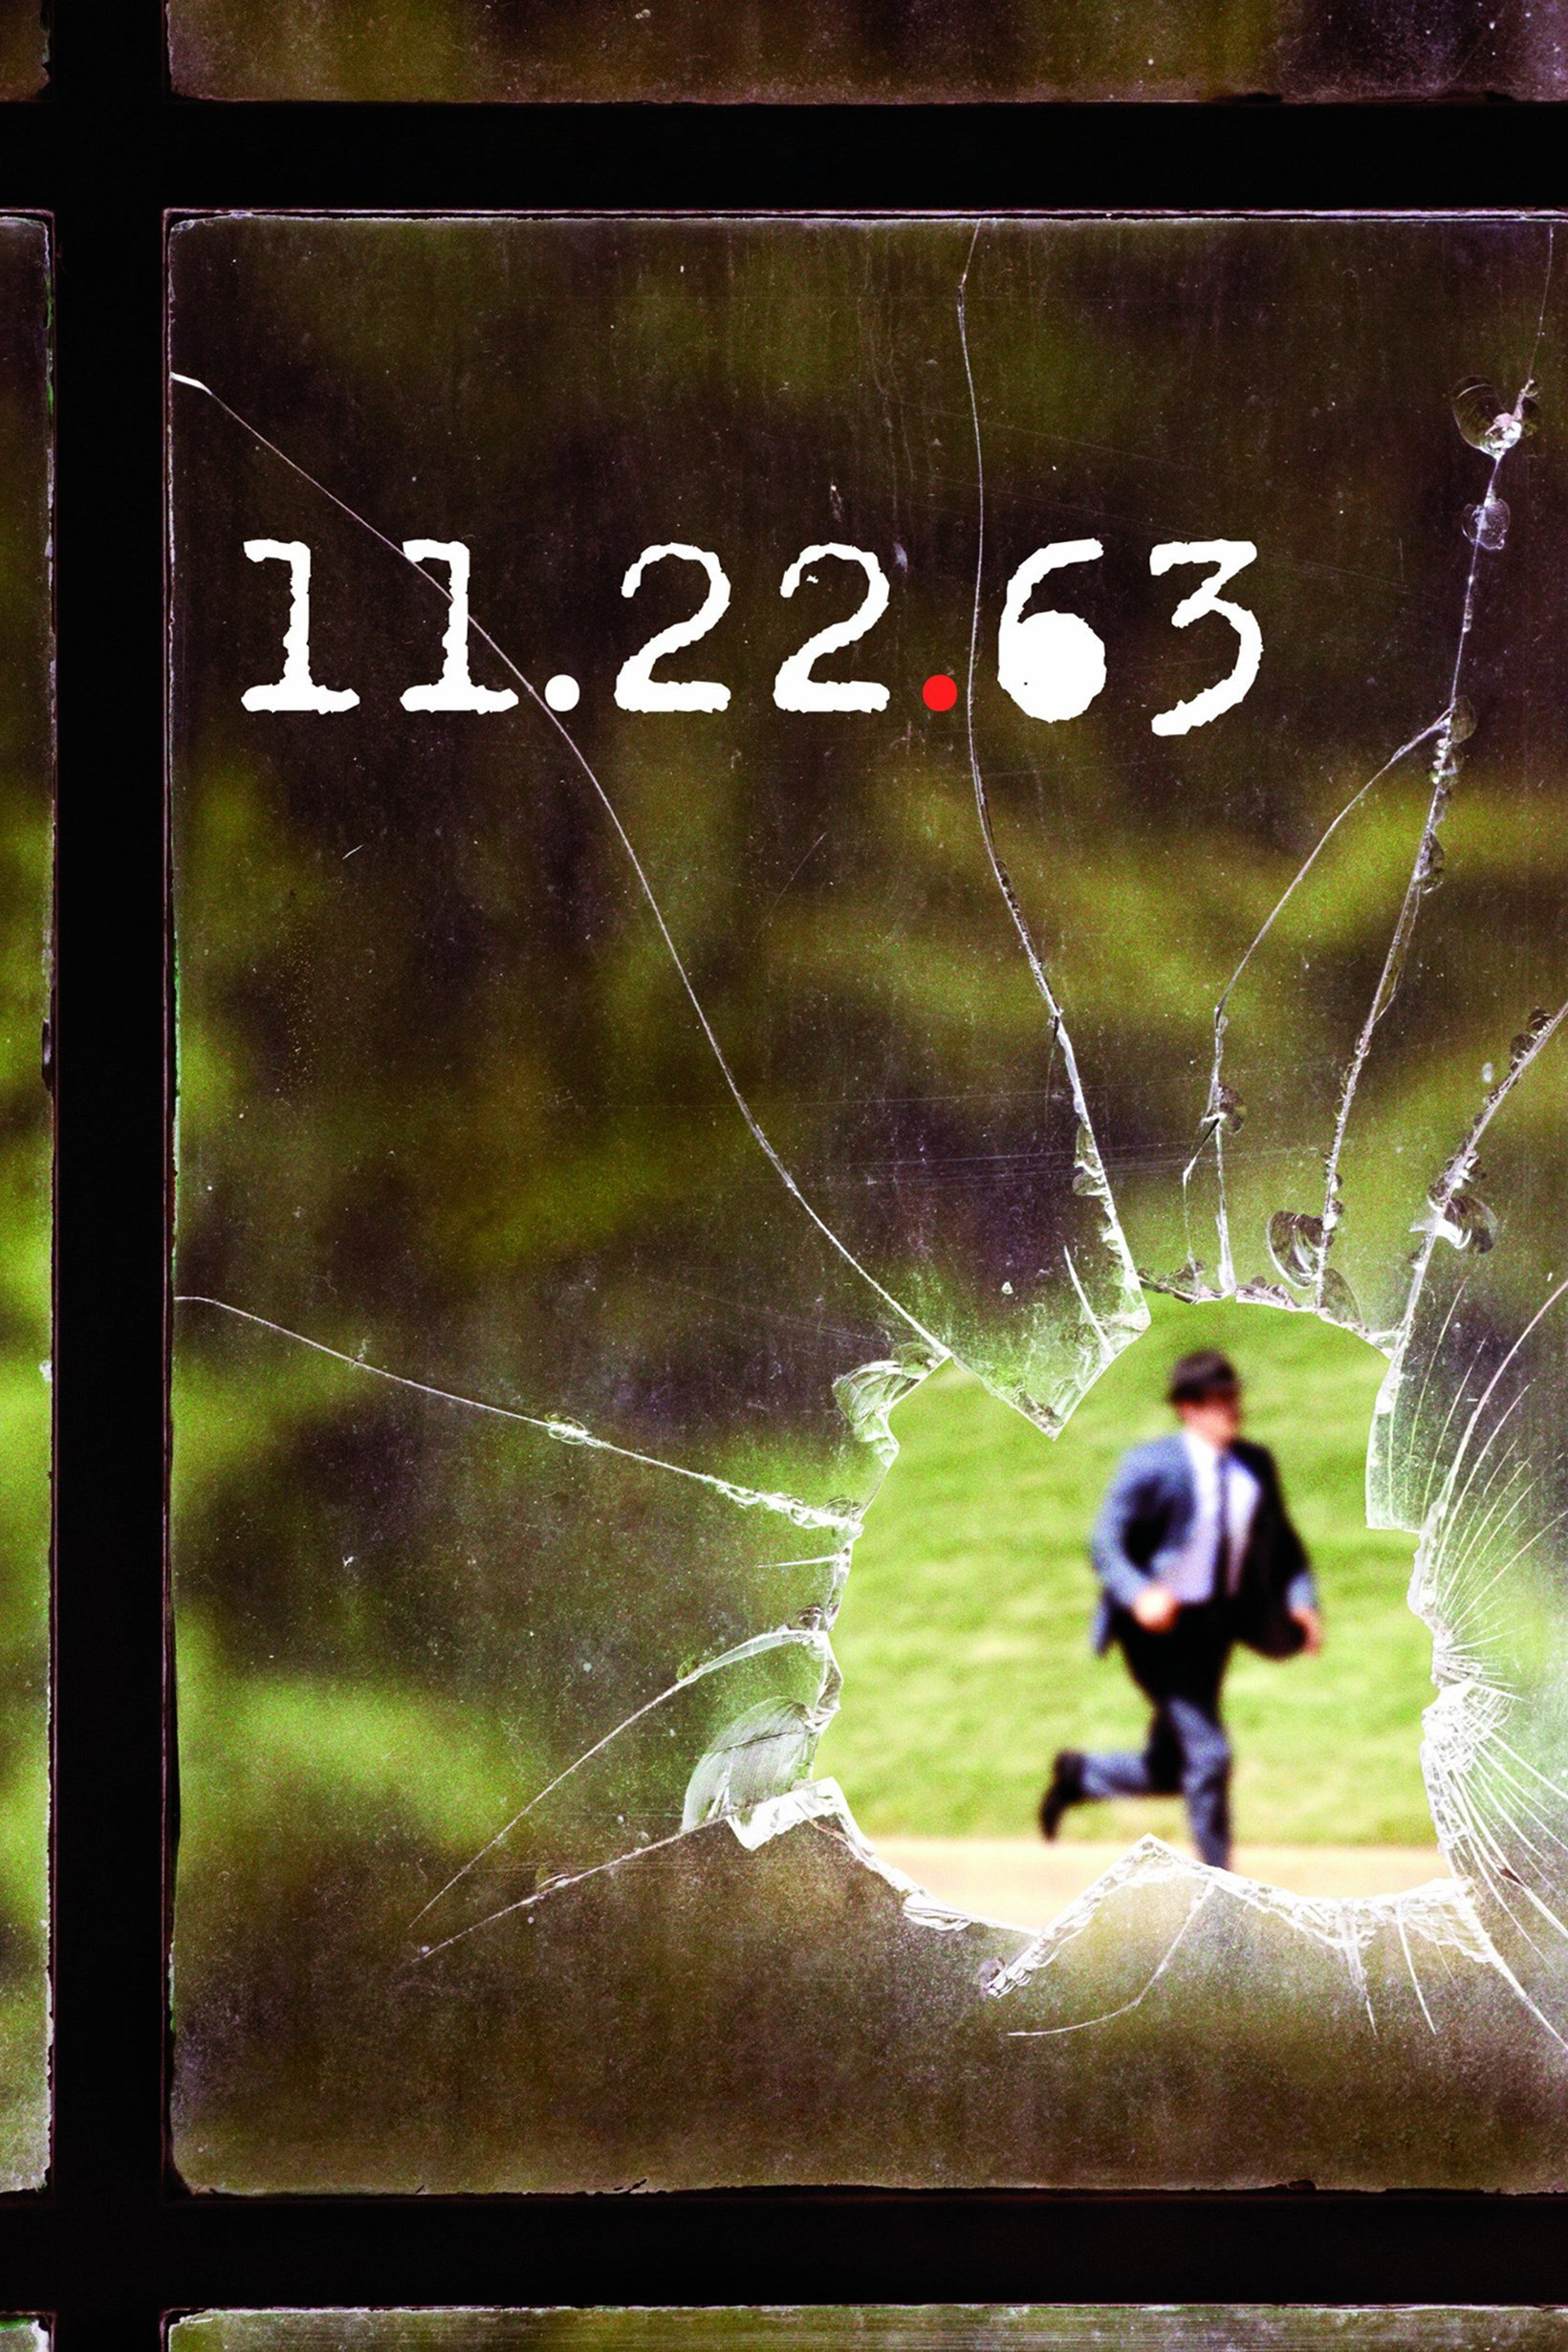 11.22.63 For mobile